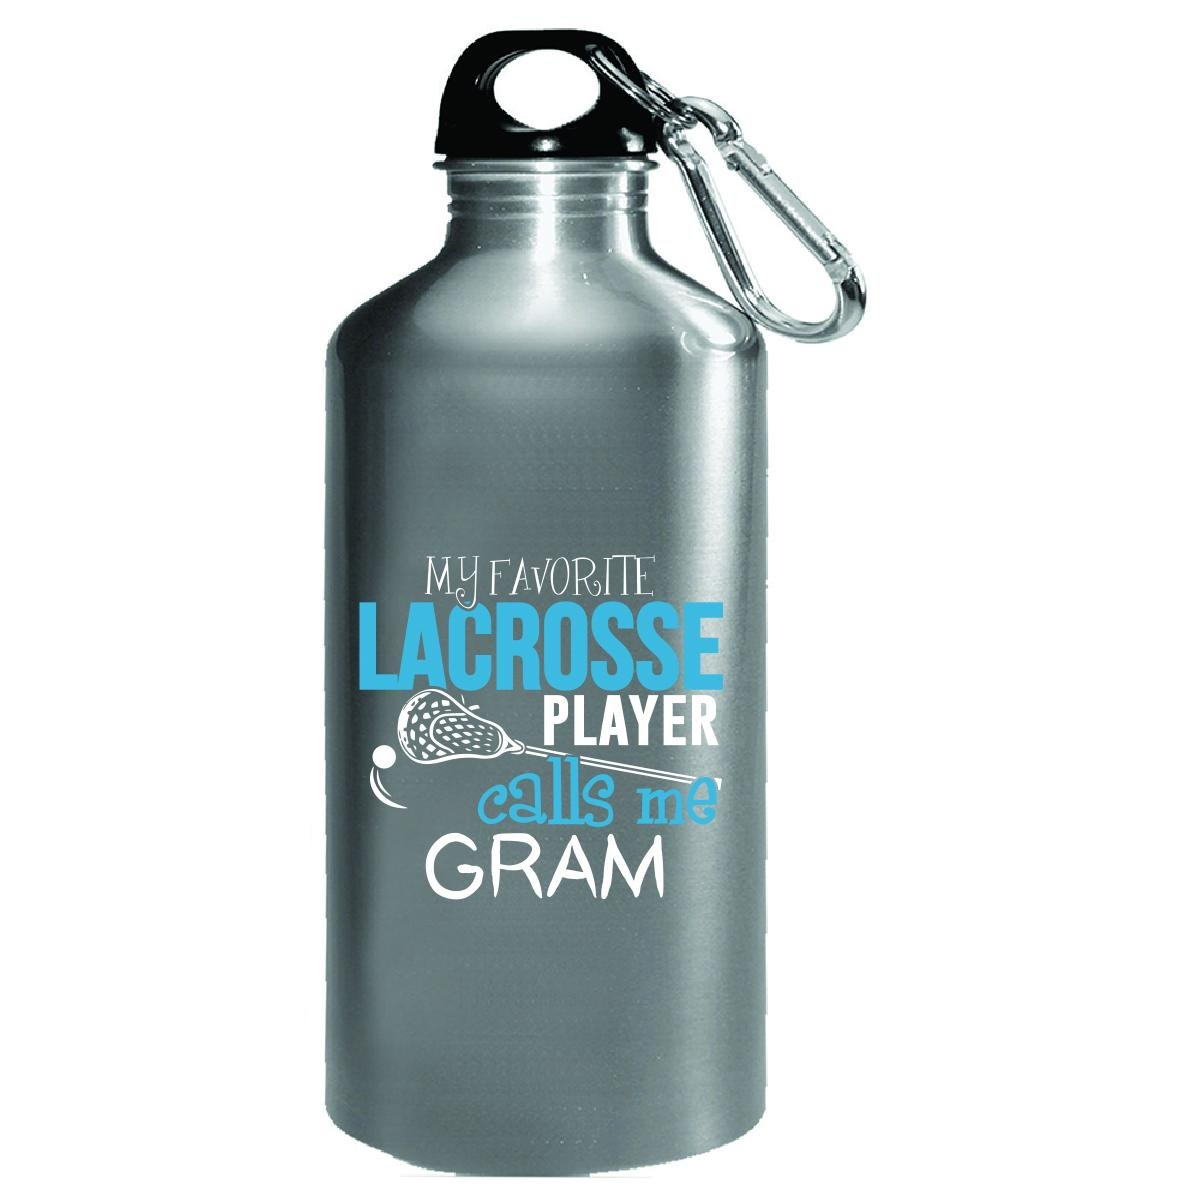 My Favorite Lacrosse Player Calls Me Gram - Water Bottle